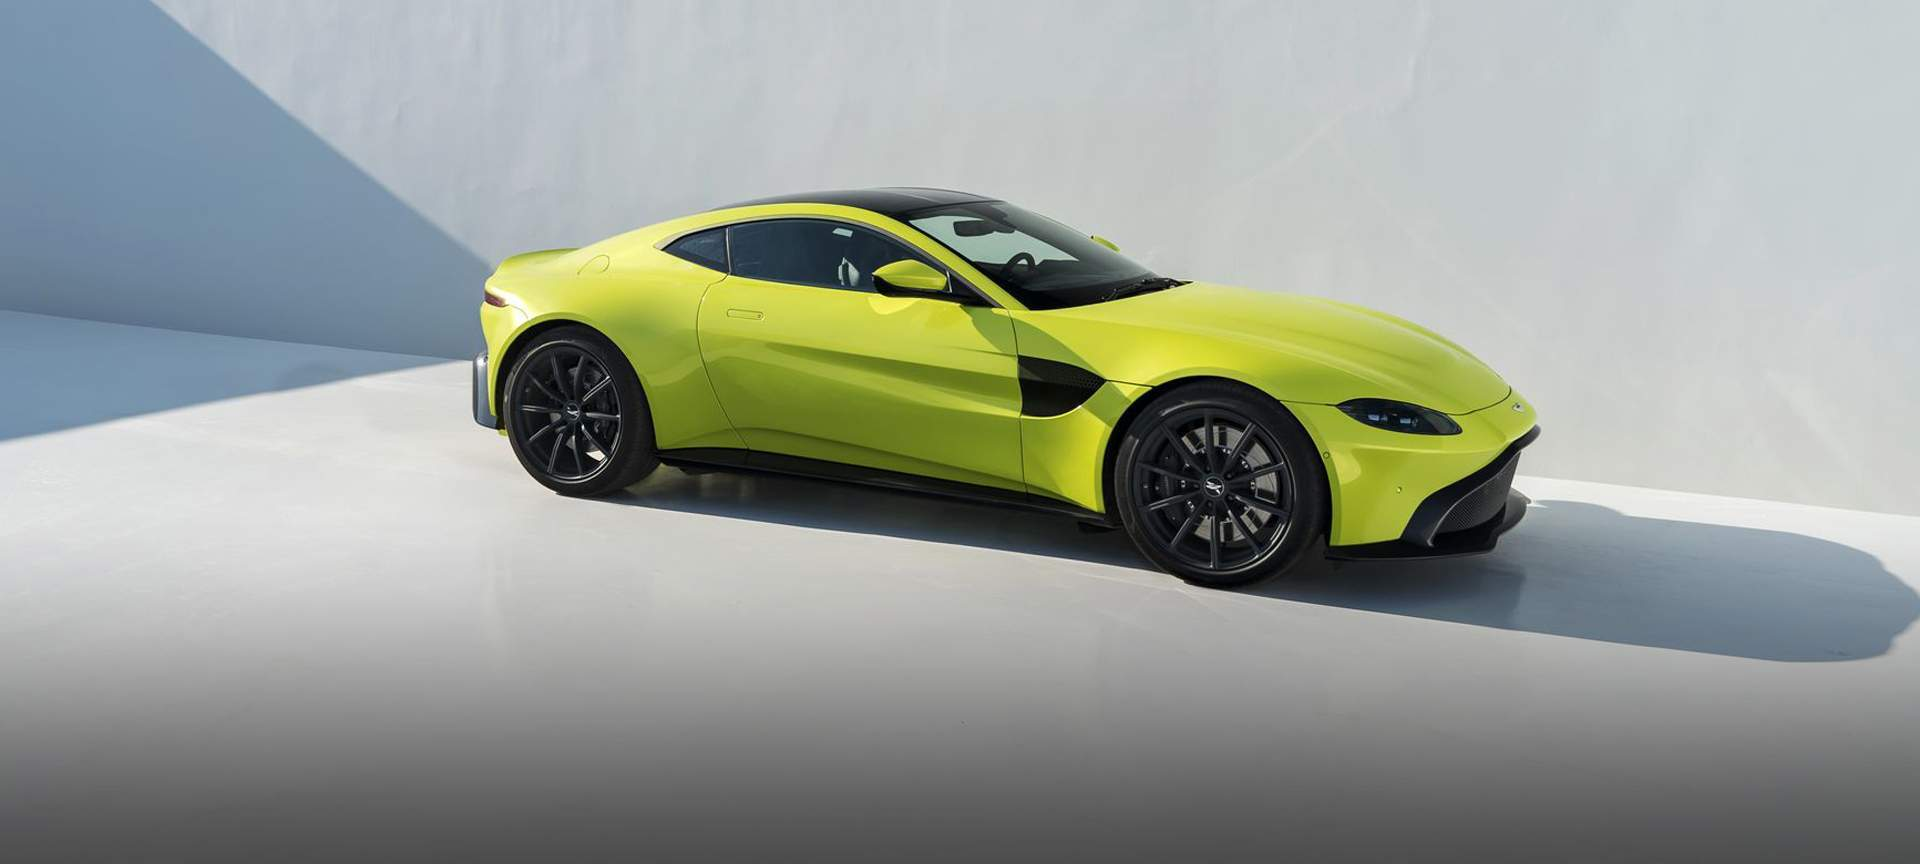 The New Aston Martin Vantage